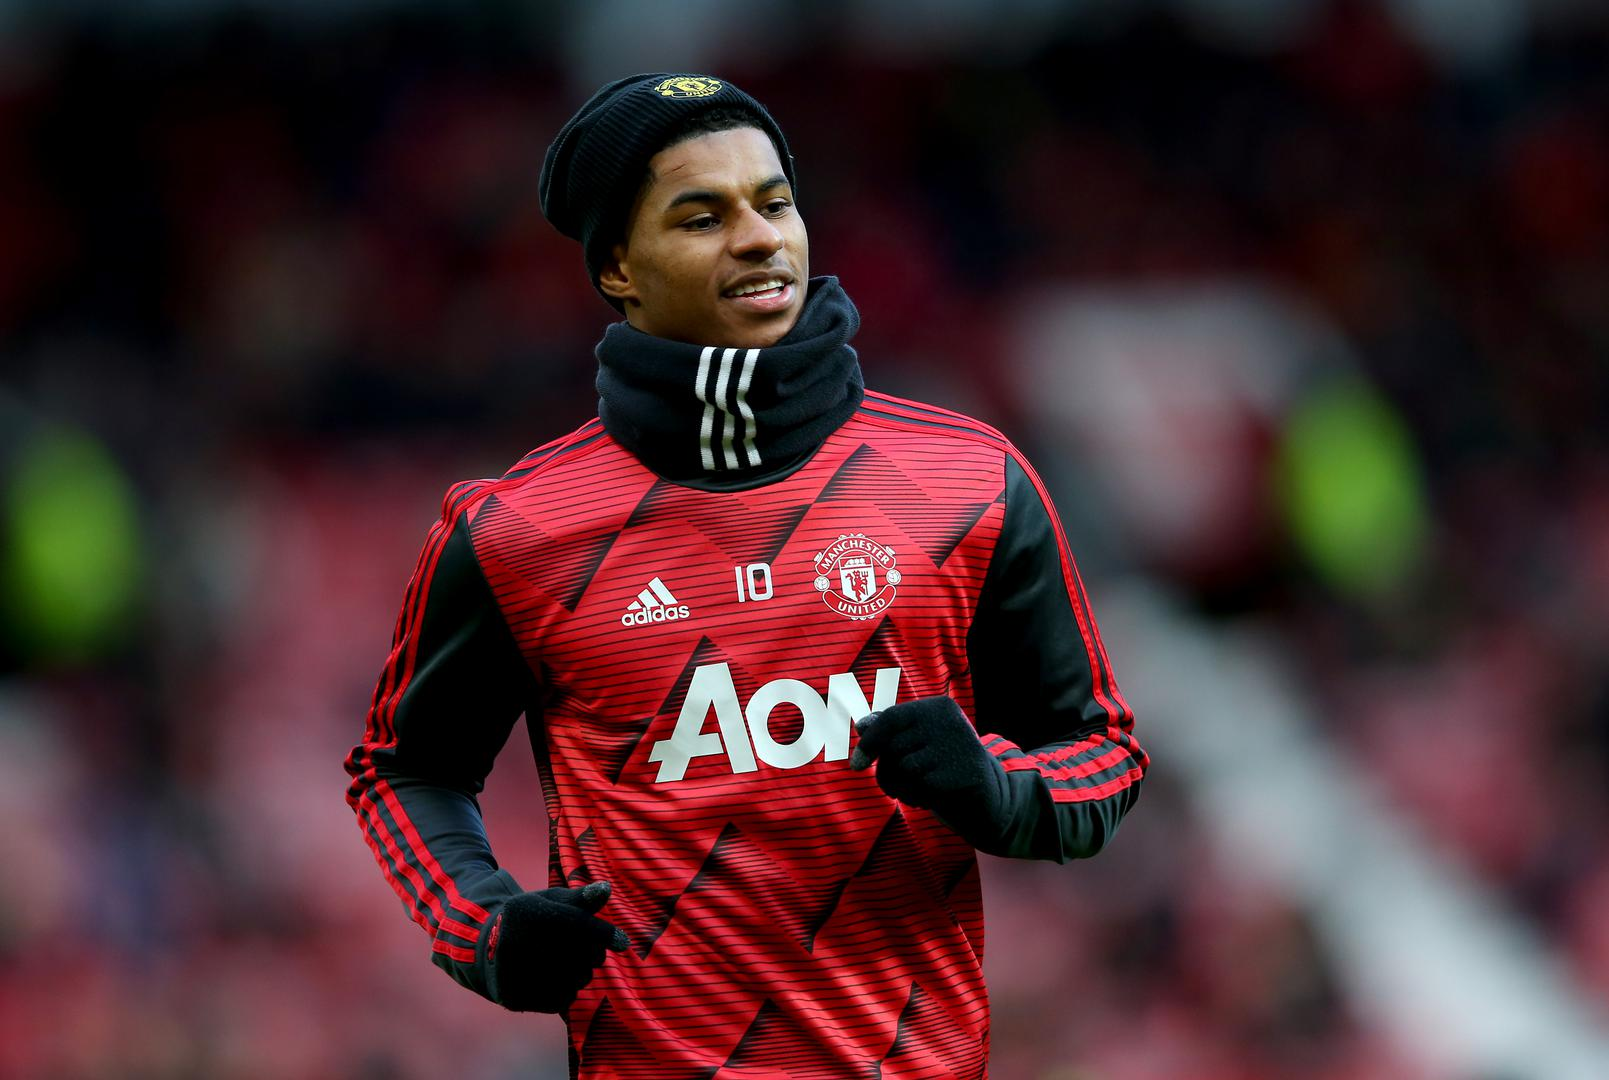 Marcus Rashford warming up for a game at Old Trafford